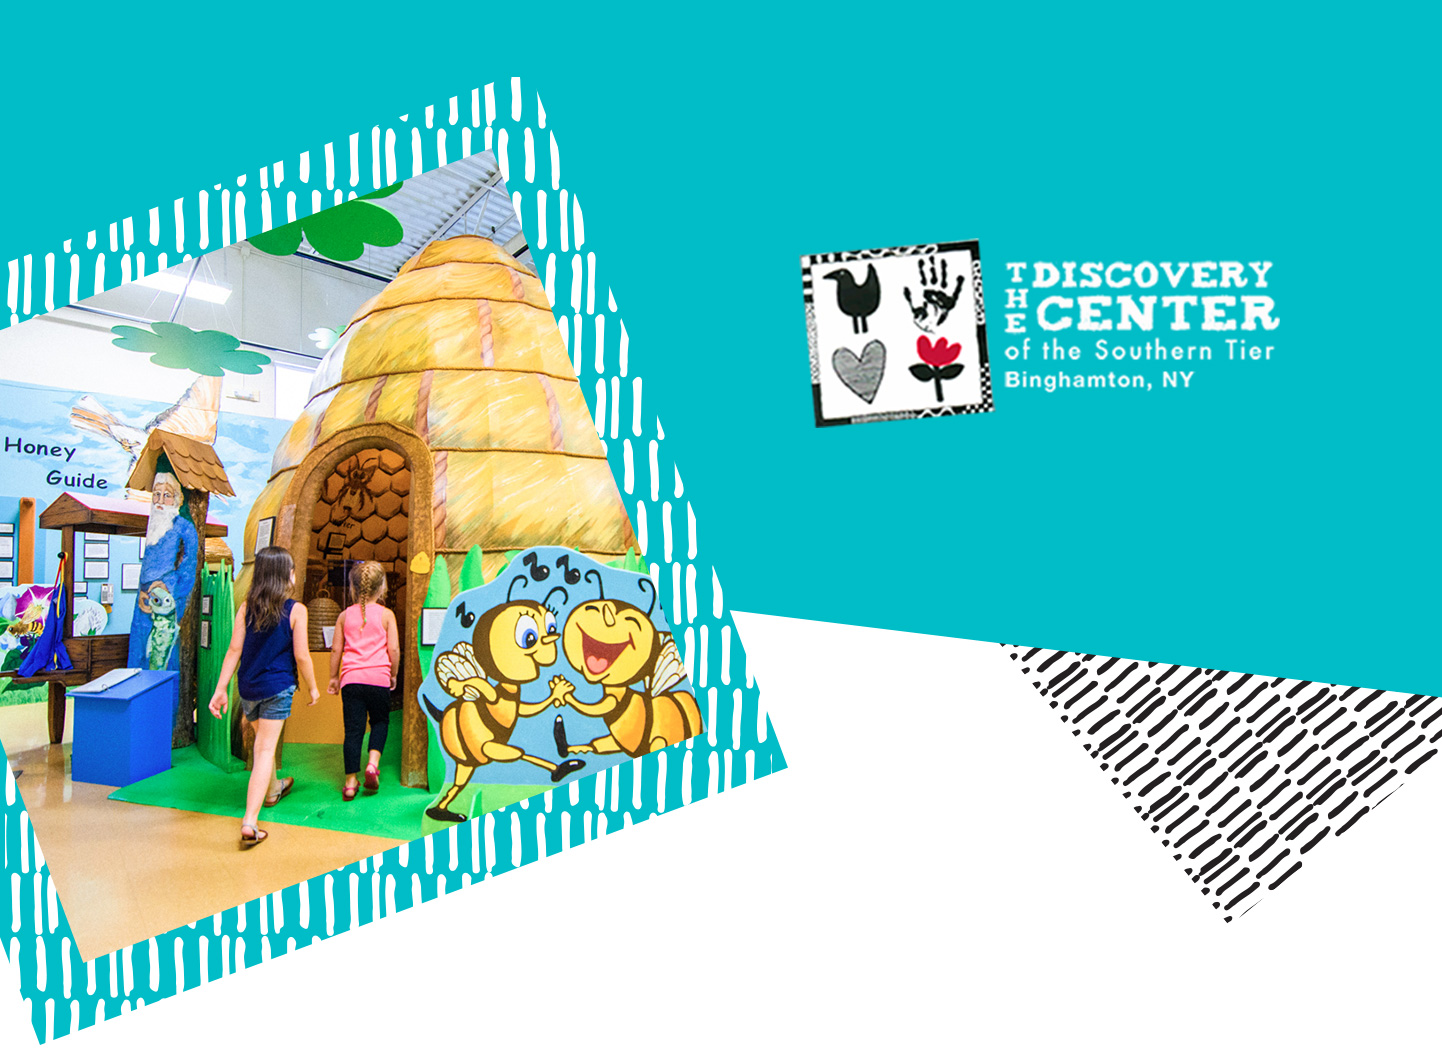 The Discovery Center logo